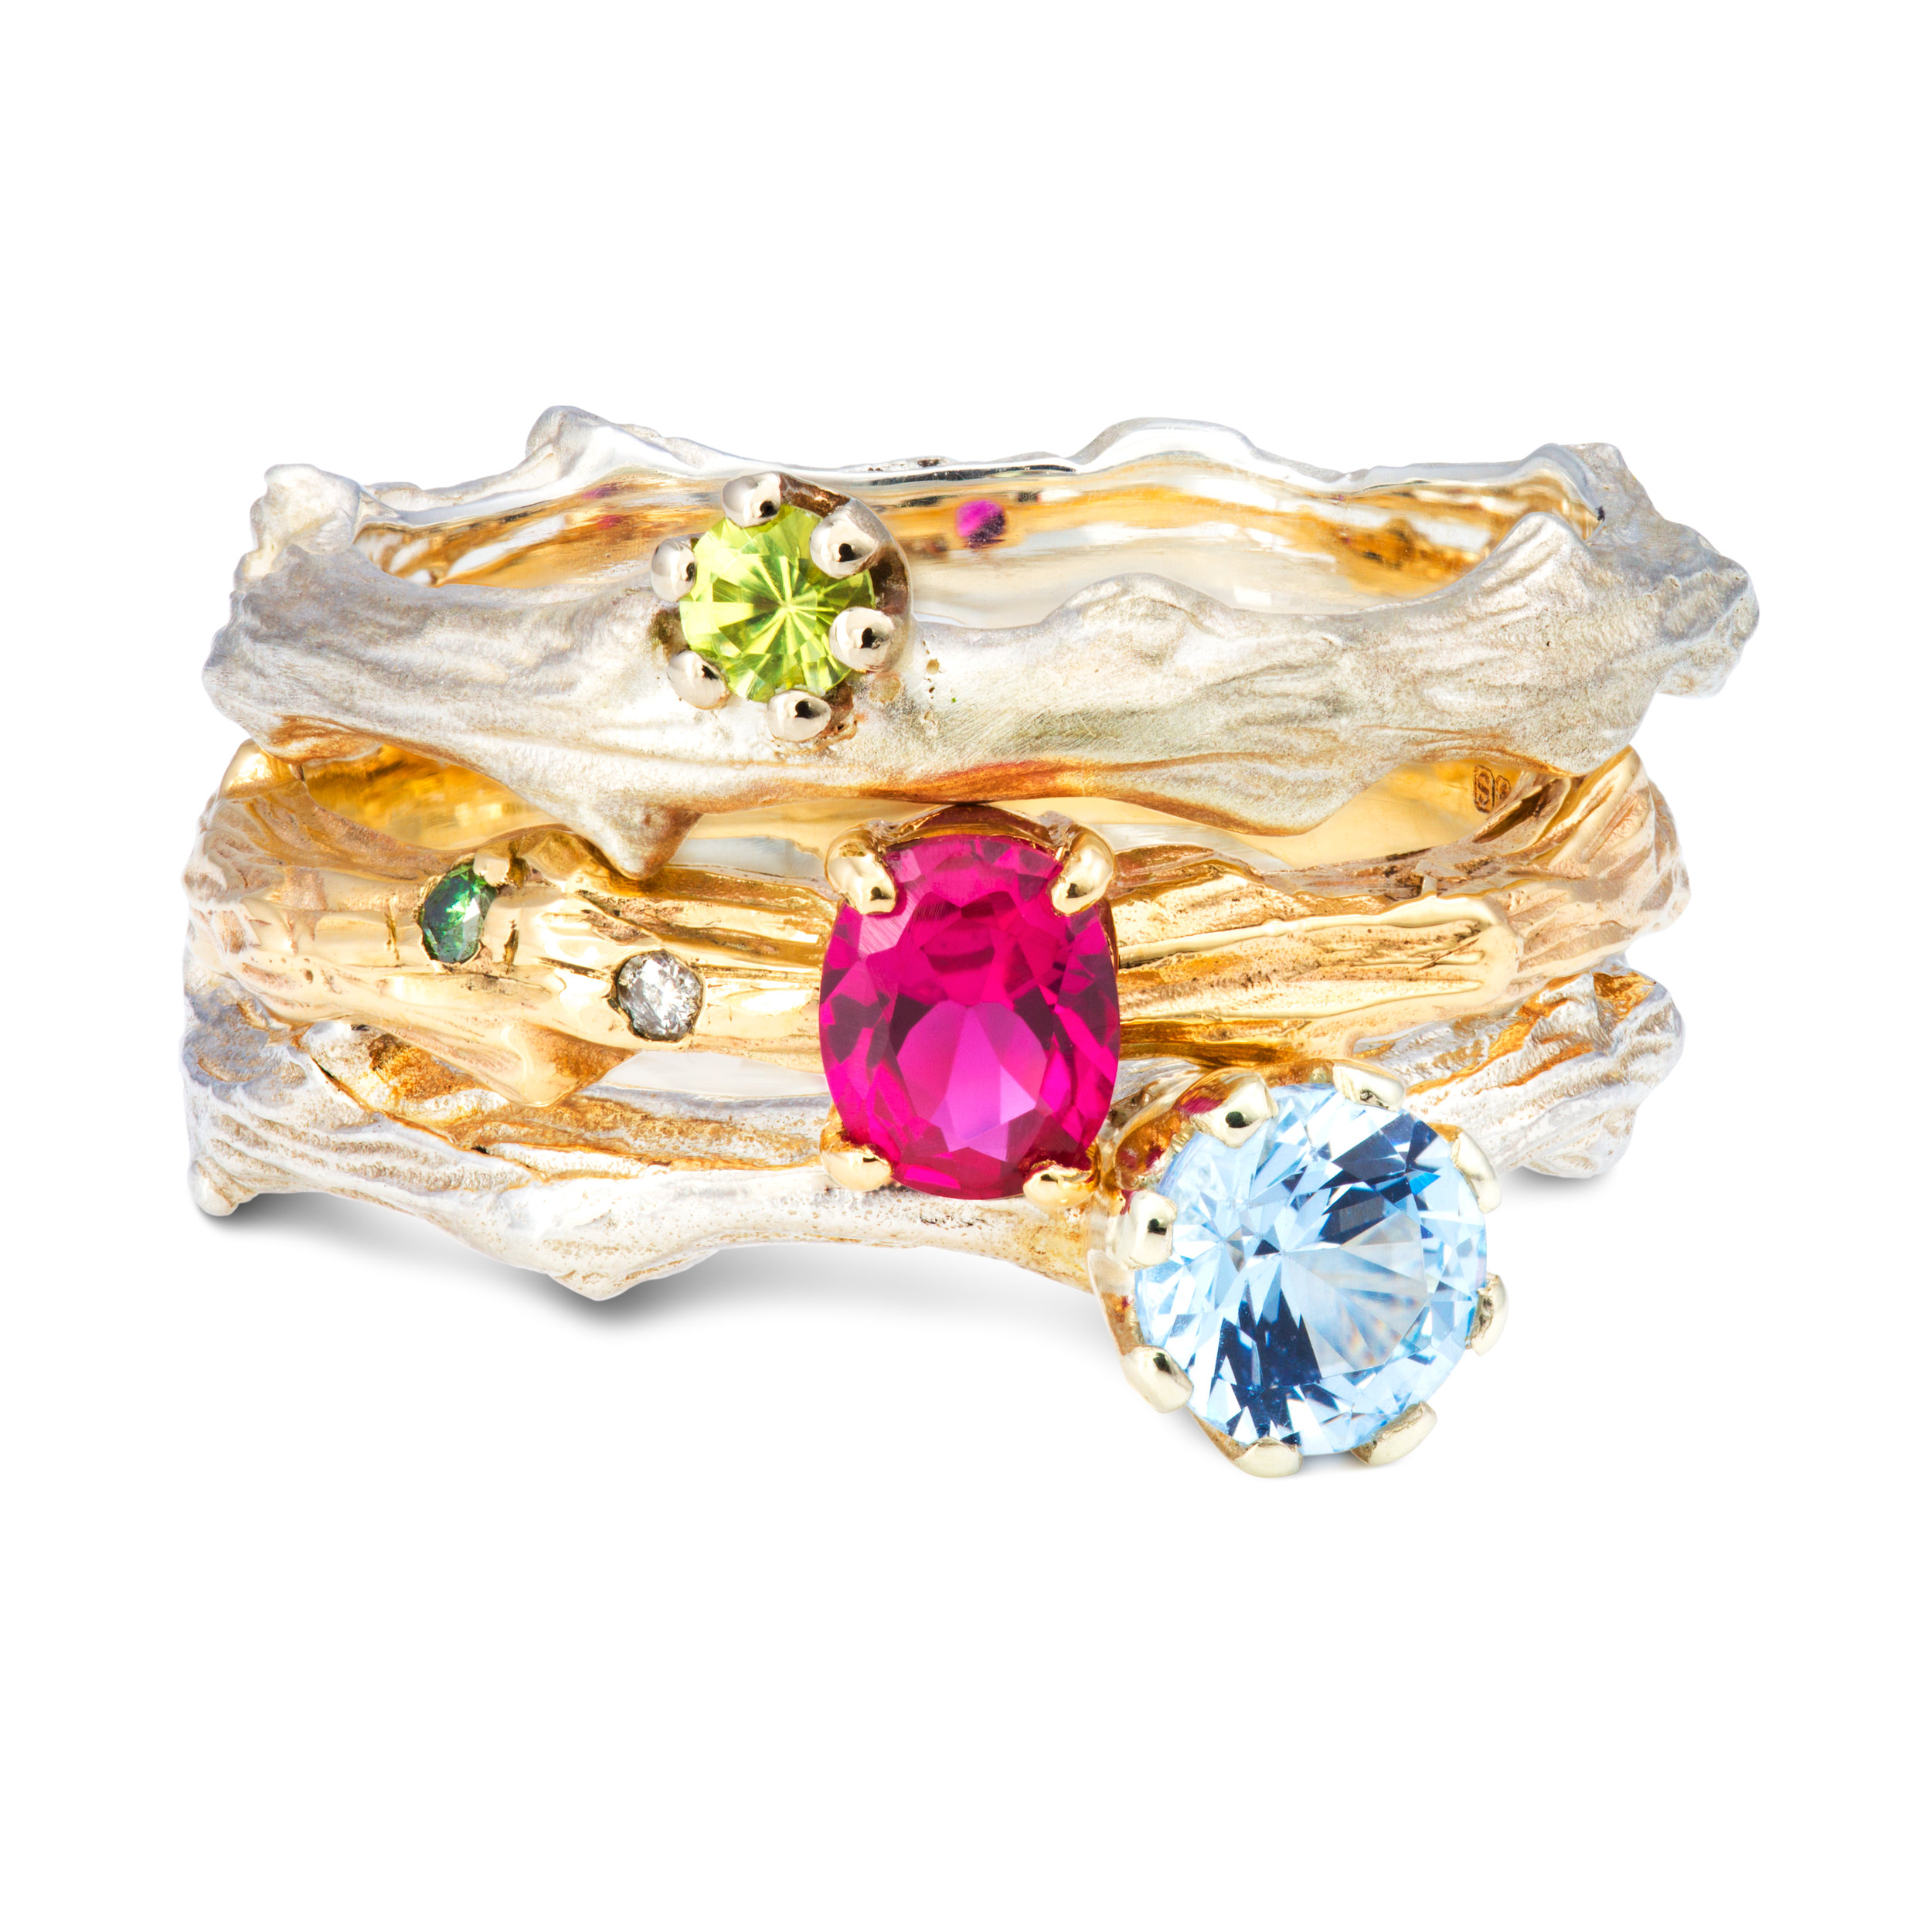 From the top: Silver & peridot ring - £235 9ct yellow gold, lab-created ruby & diamond ring - £545 Silver & lab-created blue spinel ring - £270